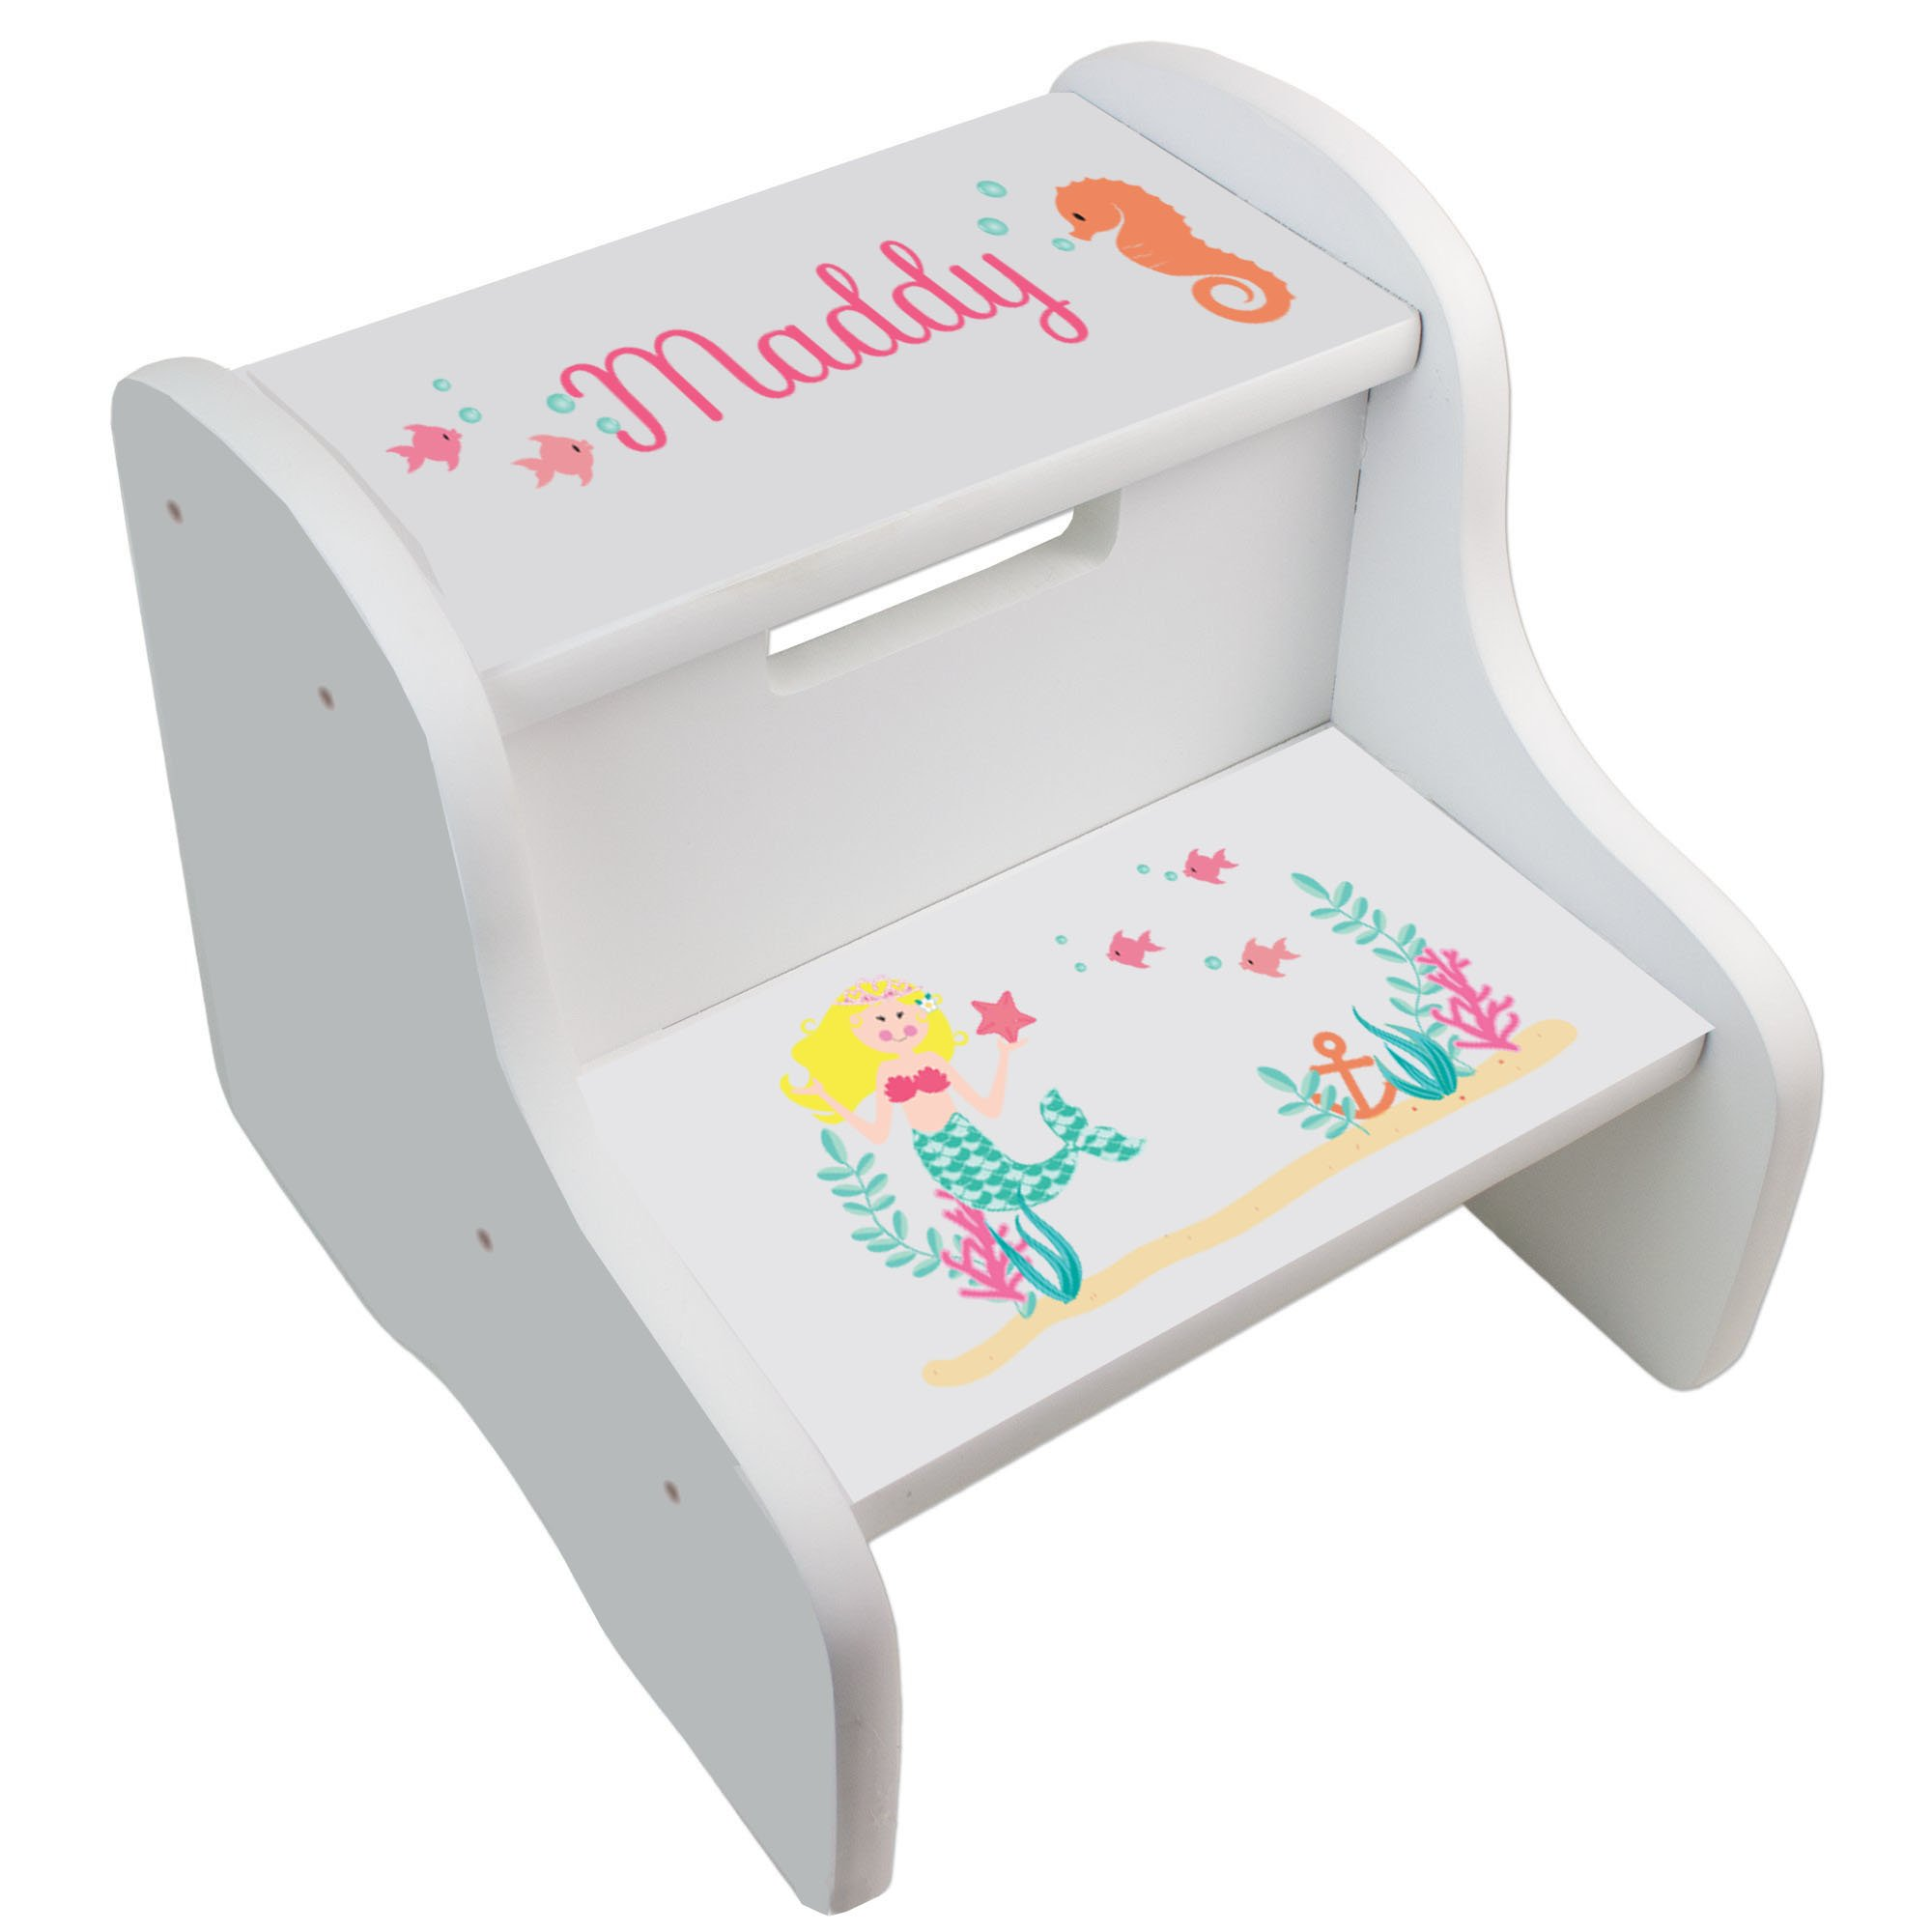 Personalized Blonde Mermaid Princess White Two Step Stool by MyBambino